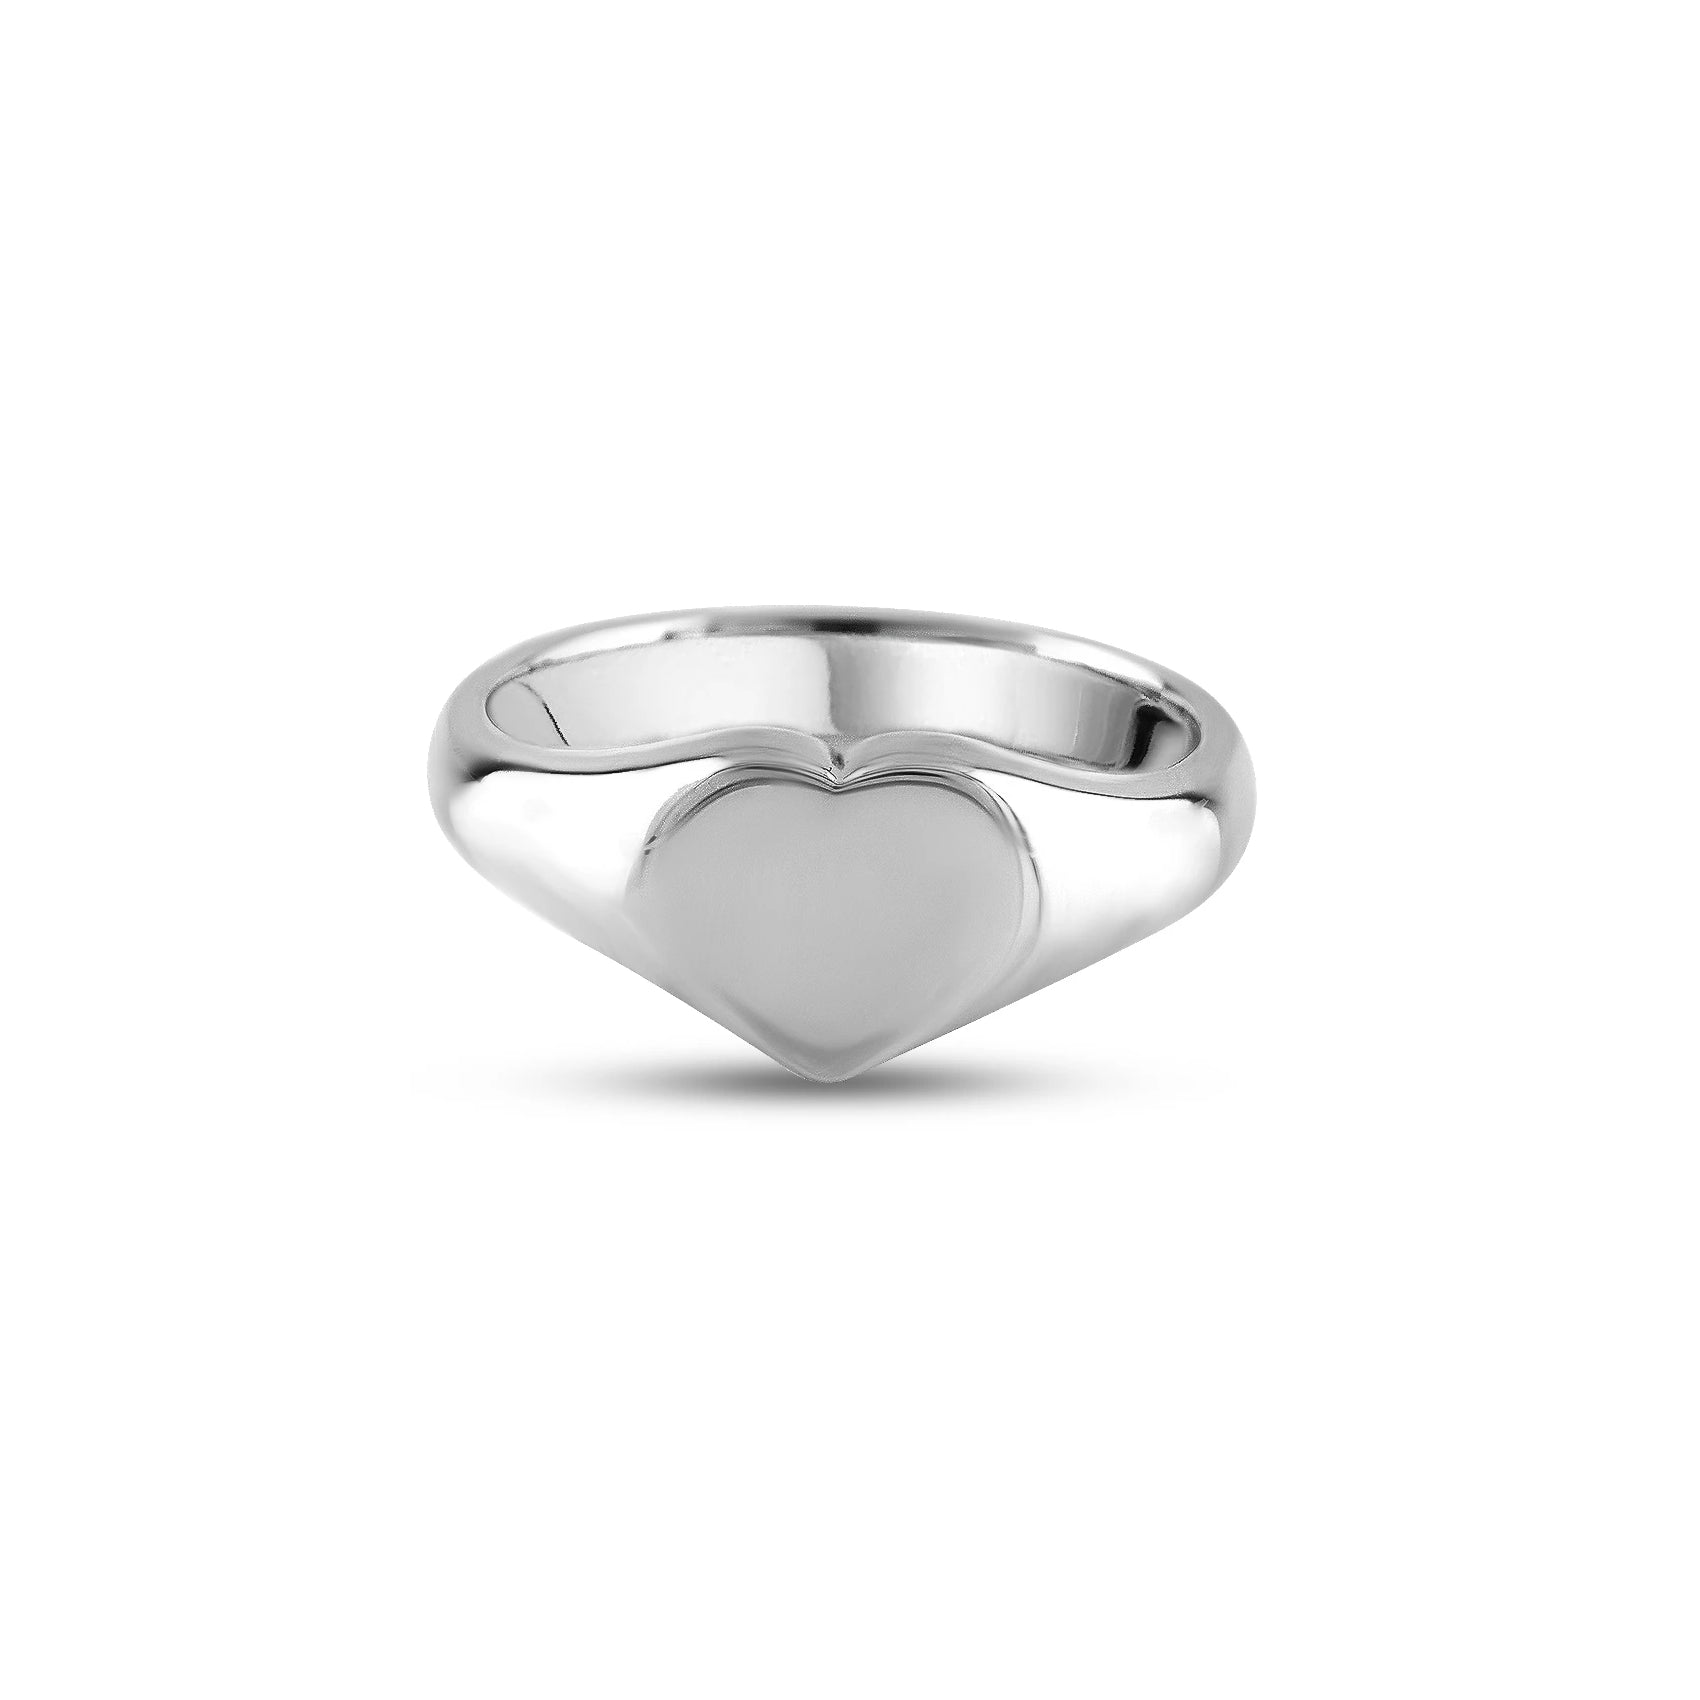 Silver 9 x 9mm Heart Signet Ring